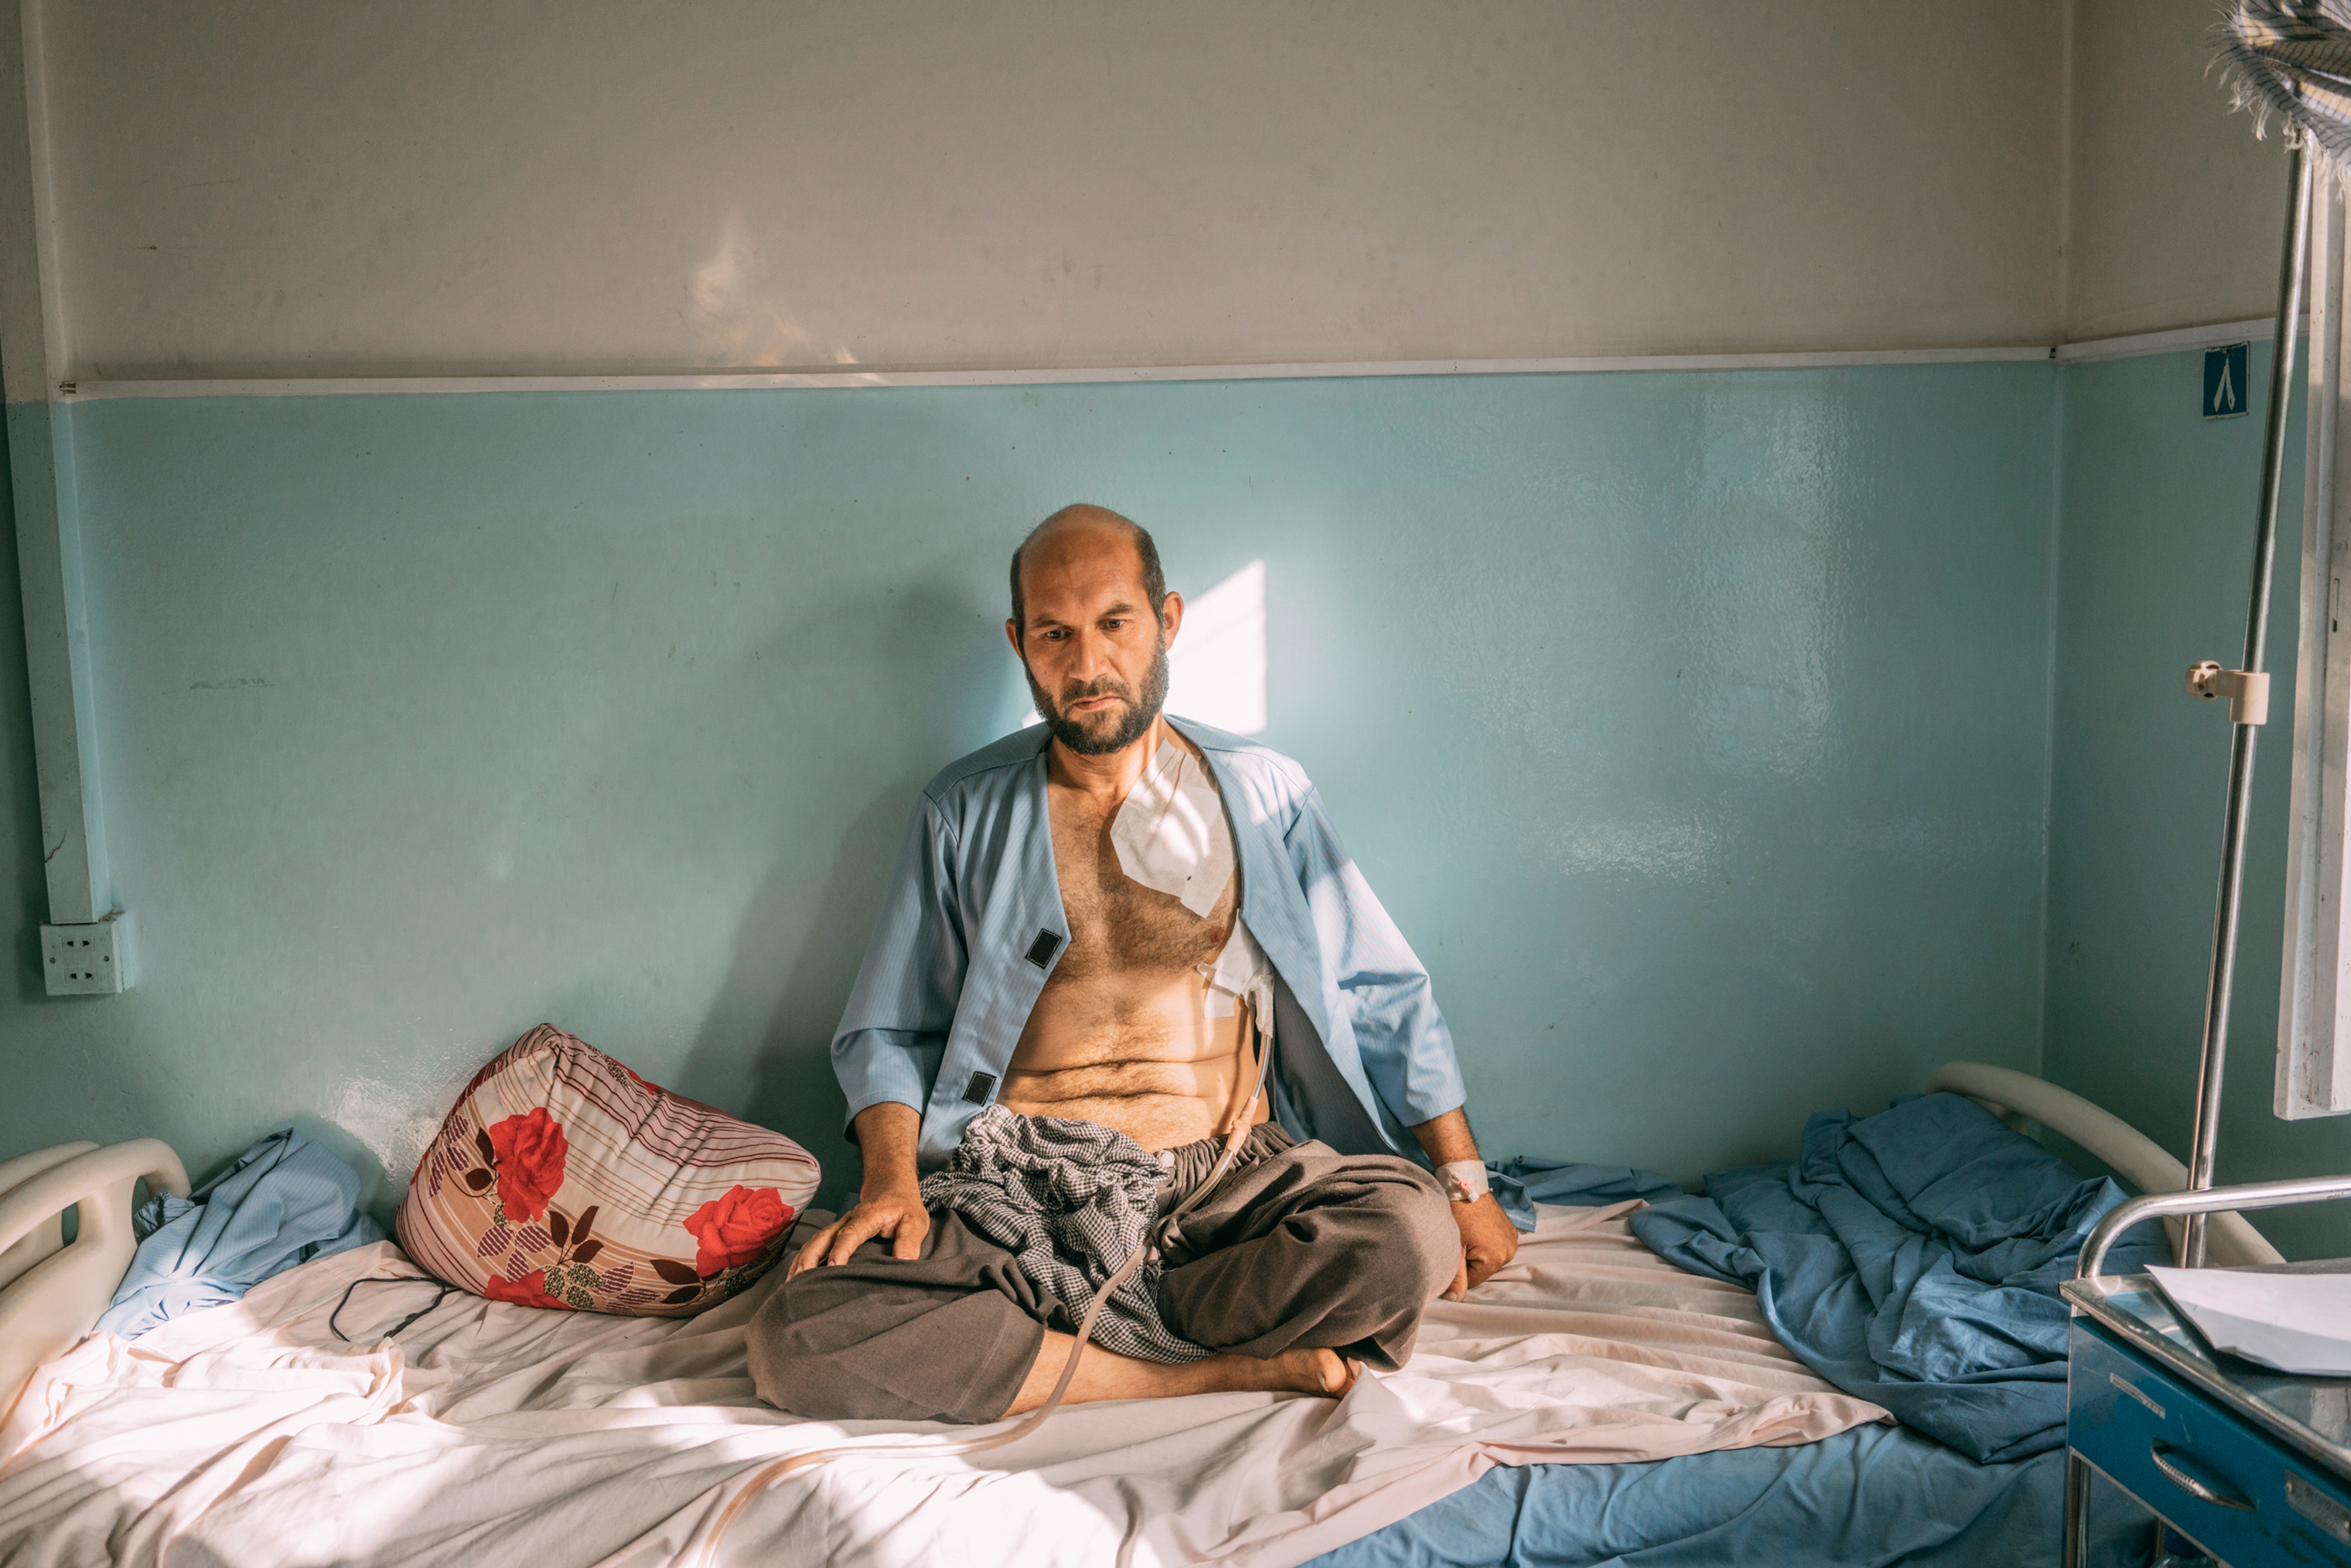 Nakibullah Salwary, 35, who was injured during the Taliban assault on Ghazni, sits on a hospital bed on Aug. 16.